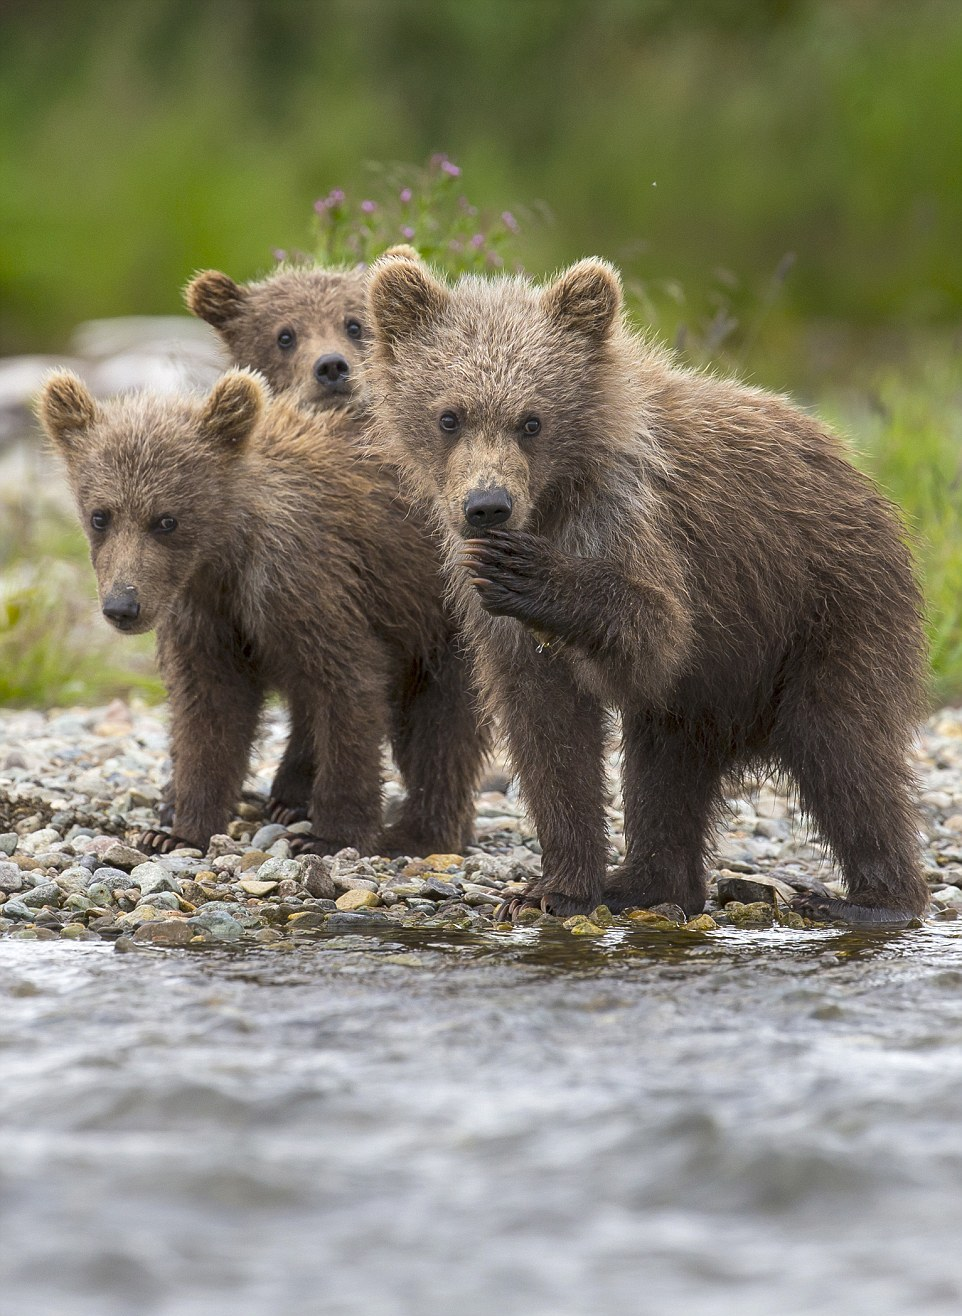 mama-bear-catches-a-salmon-to-feed-her-cubs-15